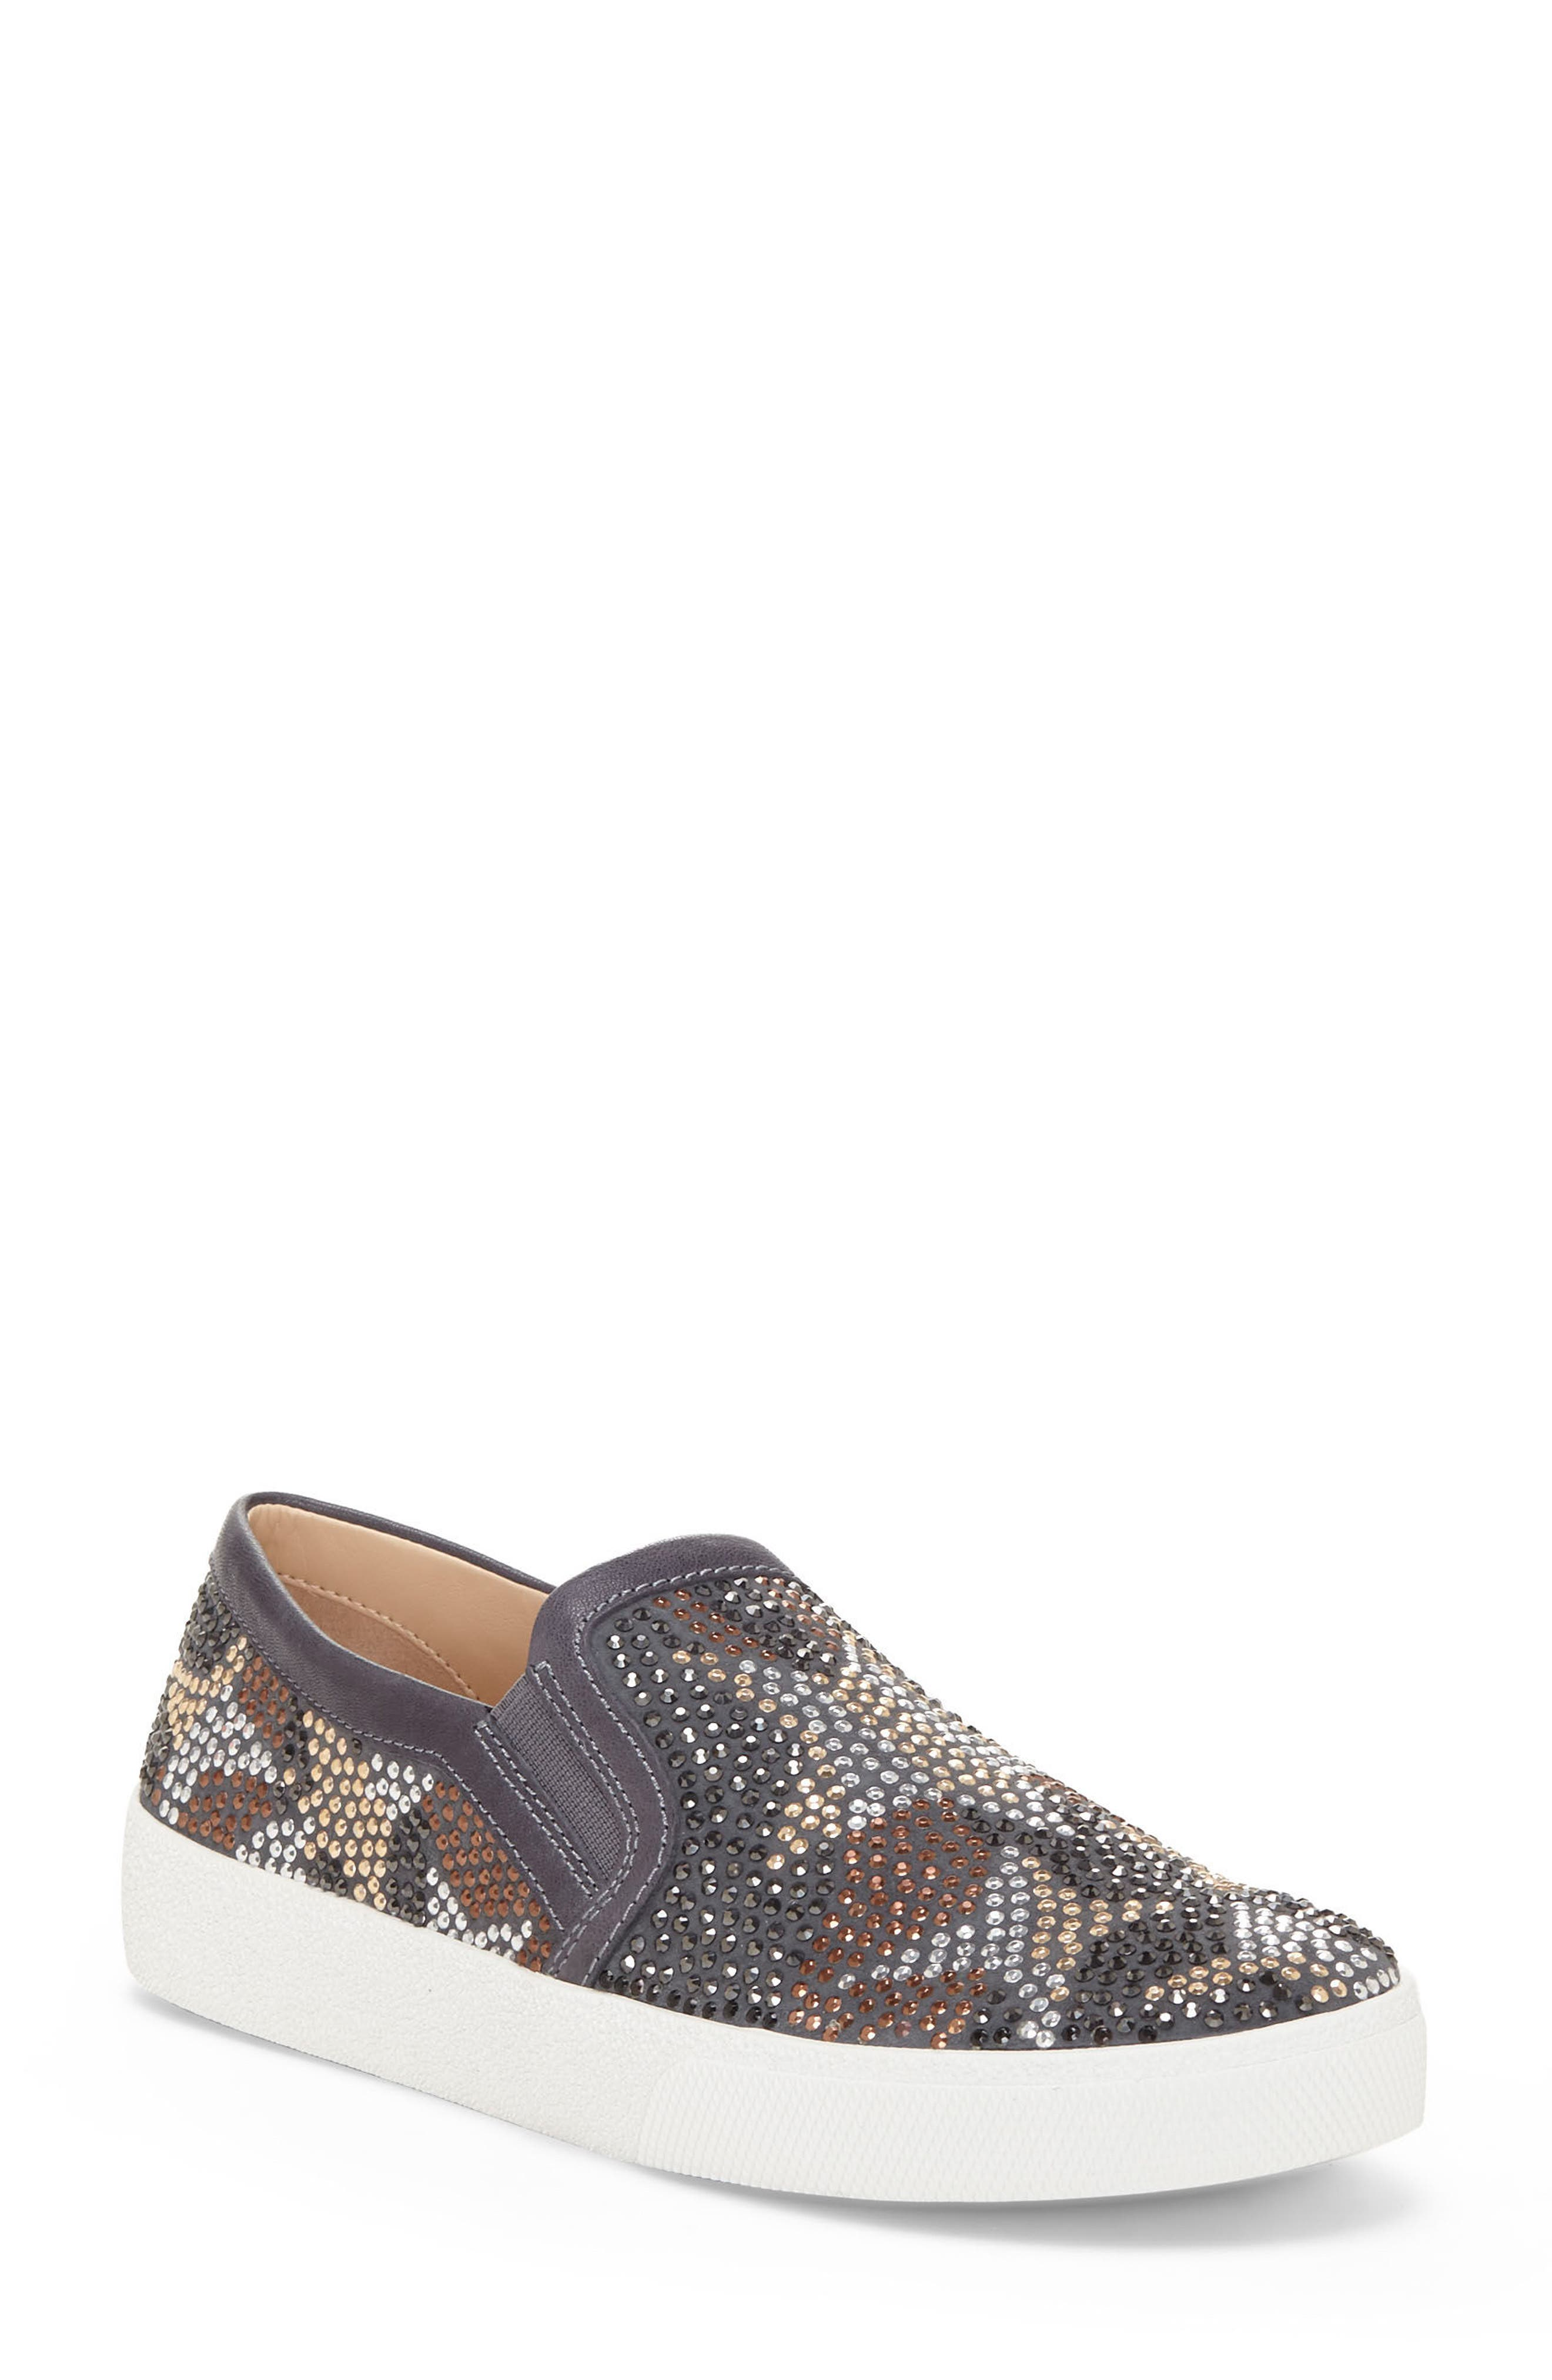 Canita Slip-On Sneaker,                             Main thumbnail 1, color,                             Gravel Suede